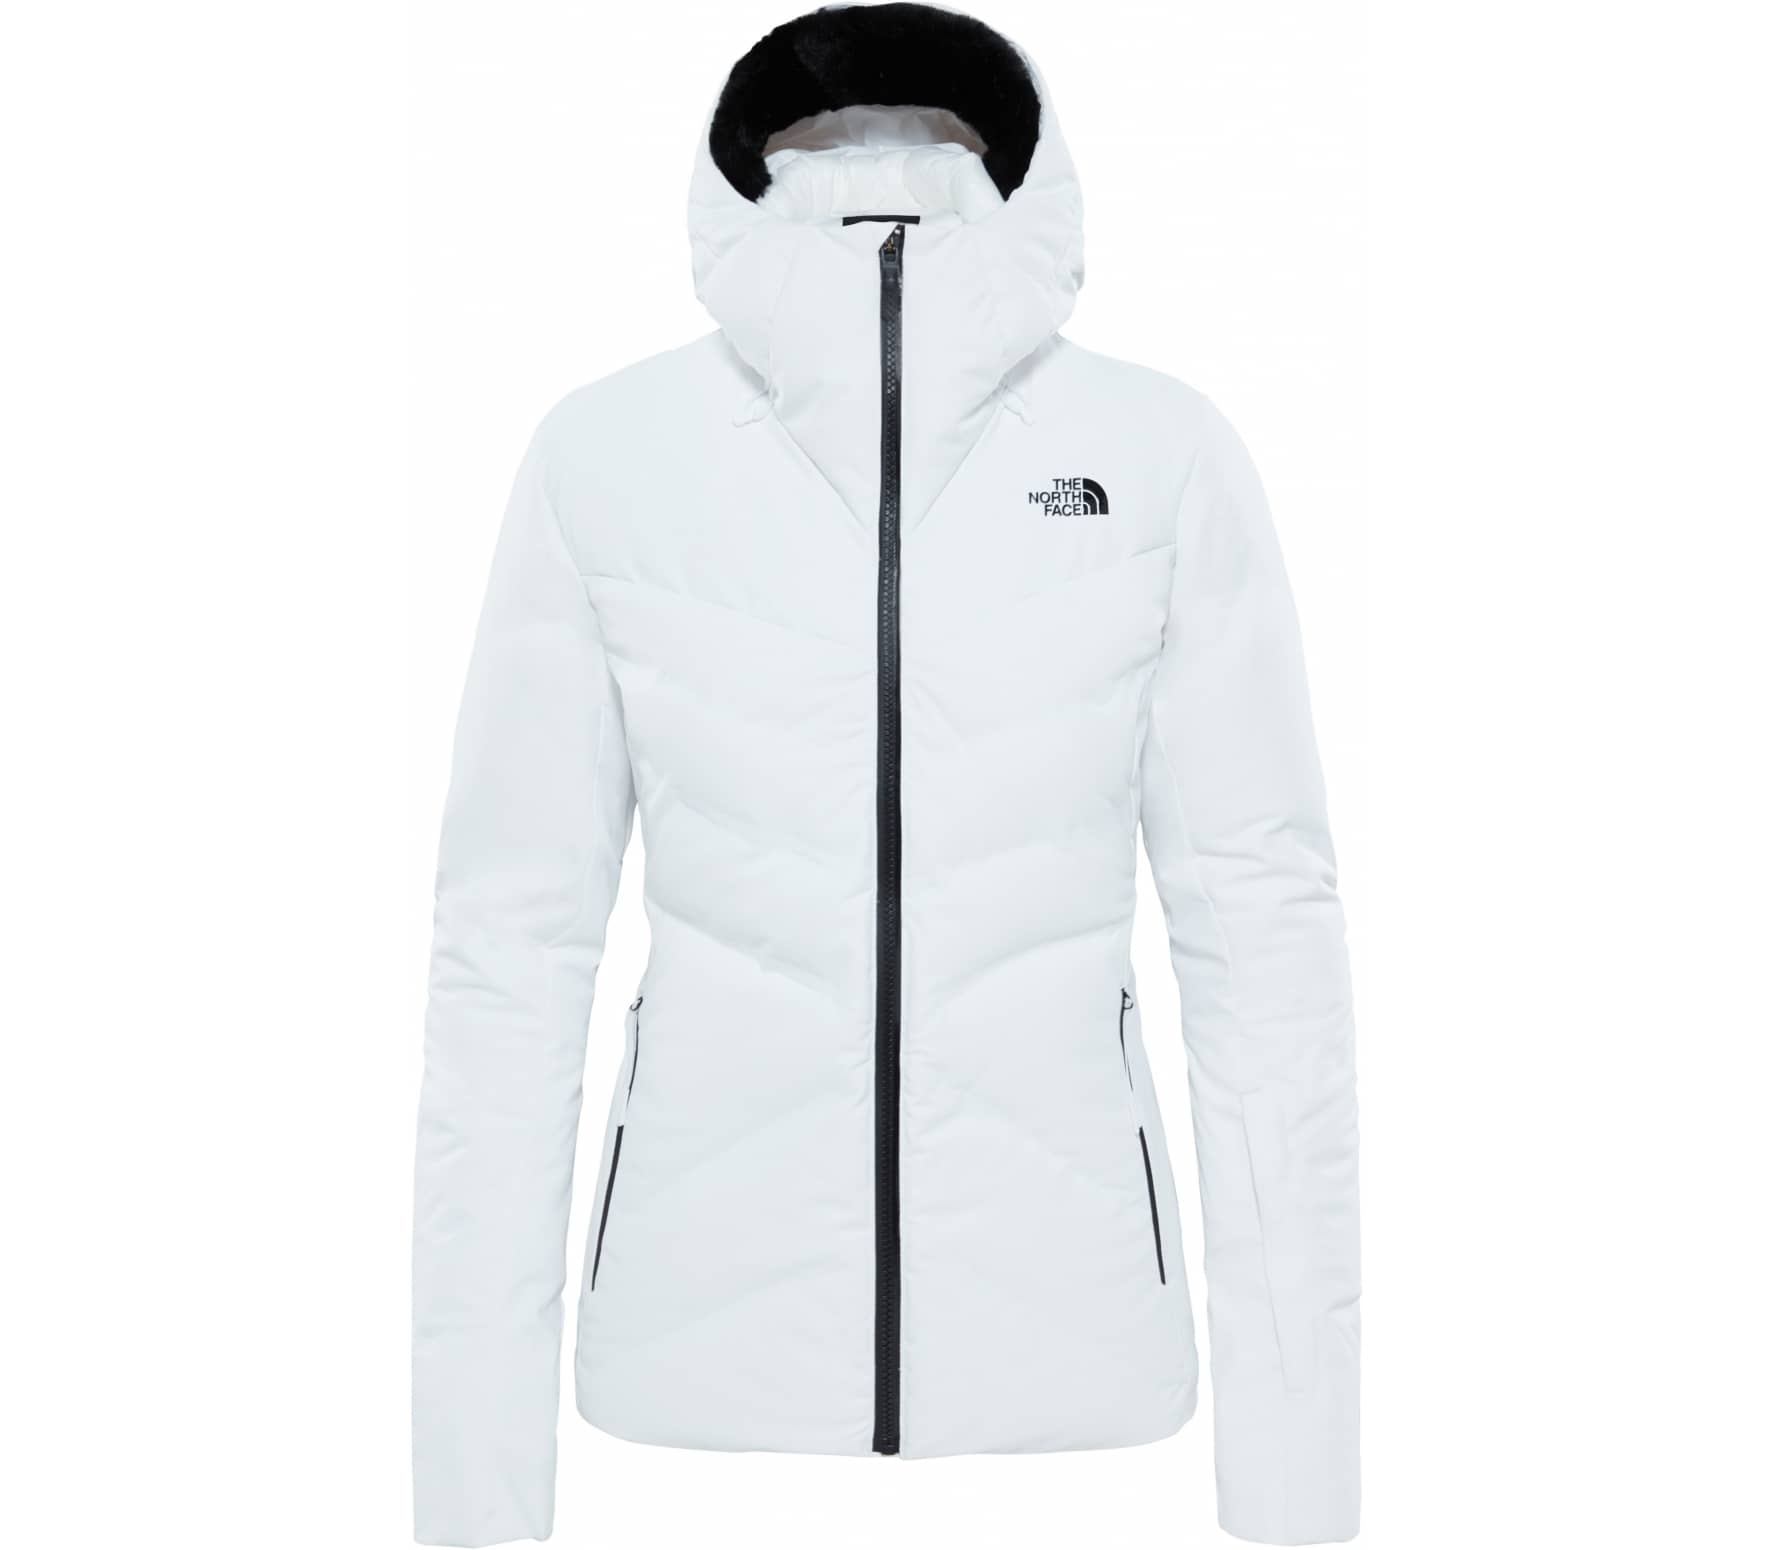 dd6b34239a The North Face - Cirque Down Femmes Manteau de ski (blanc) acheter ...